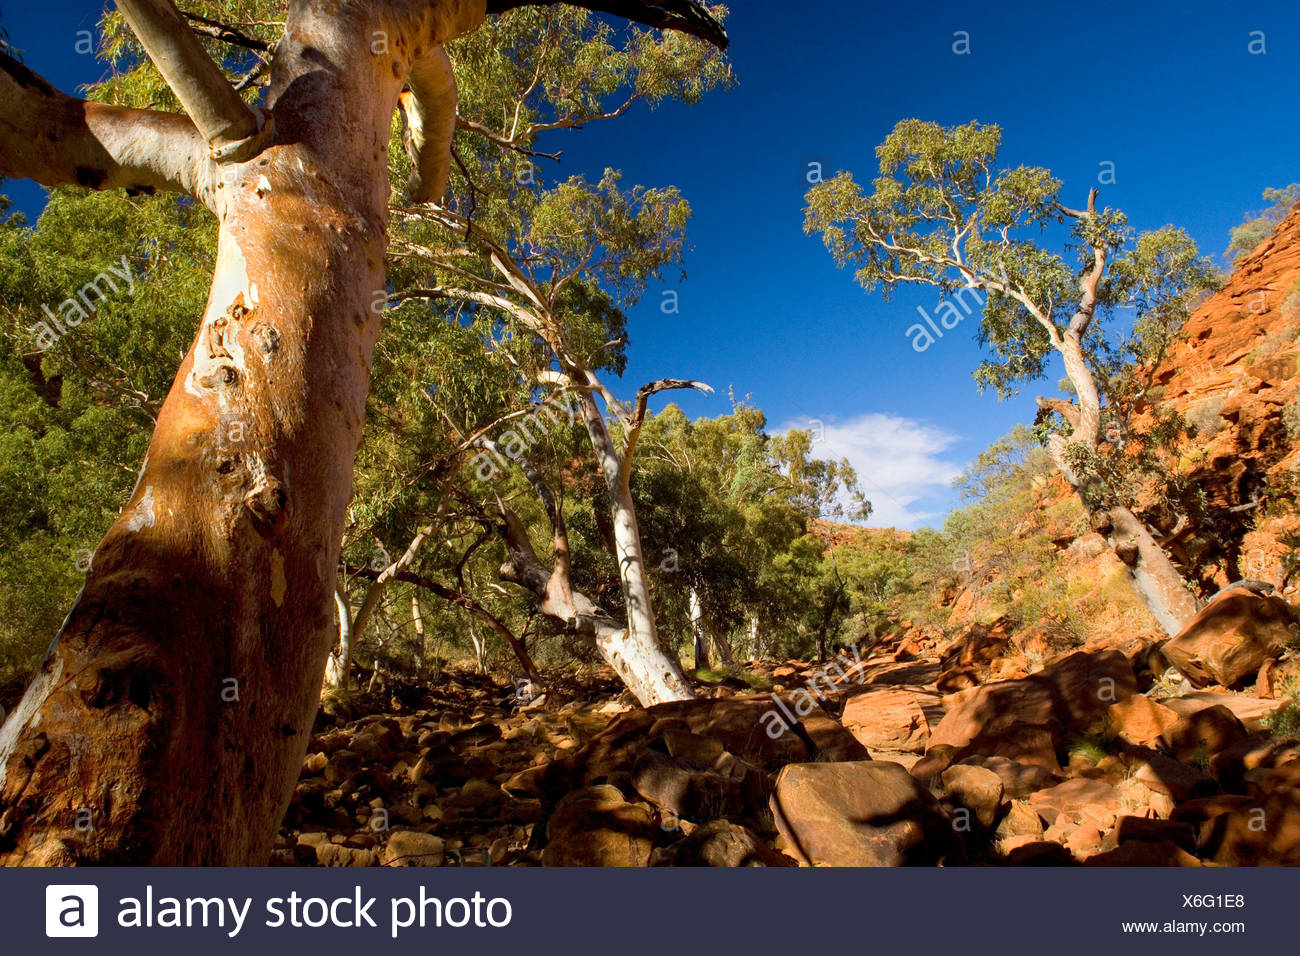 Longbeak eucalyptus, river redgum, river red gum (Eucalyptus camaldulensis), growing on the floor of Kings Canyon in the dried-up river bed of Kings river, Australia, Northern Territory, Kings Canyon National Park - Stock Image